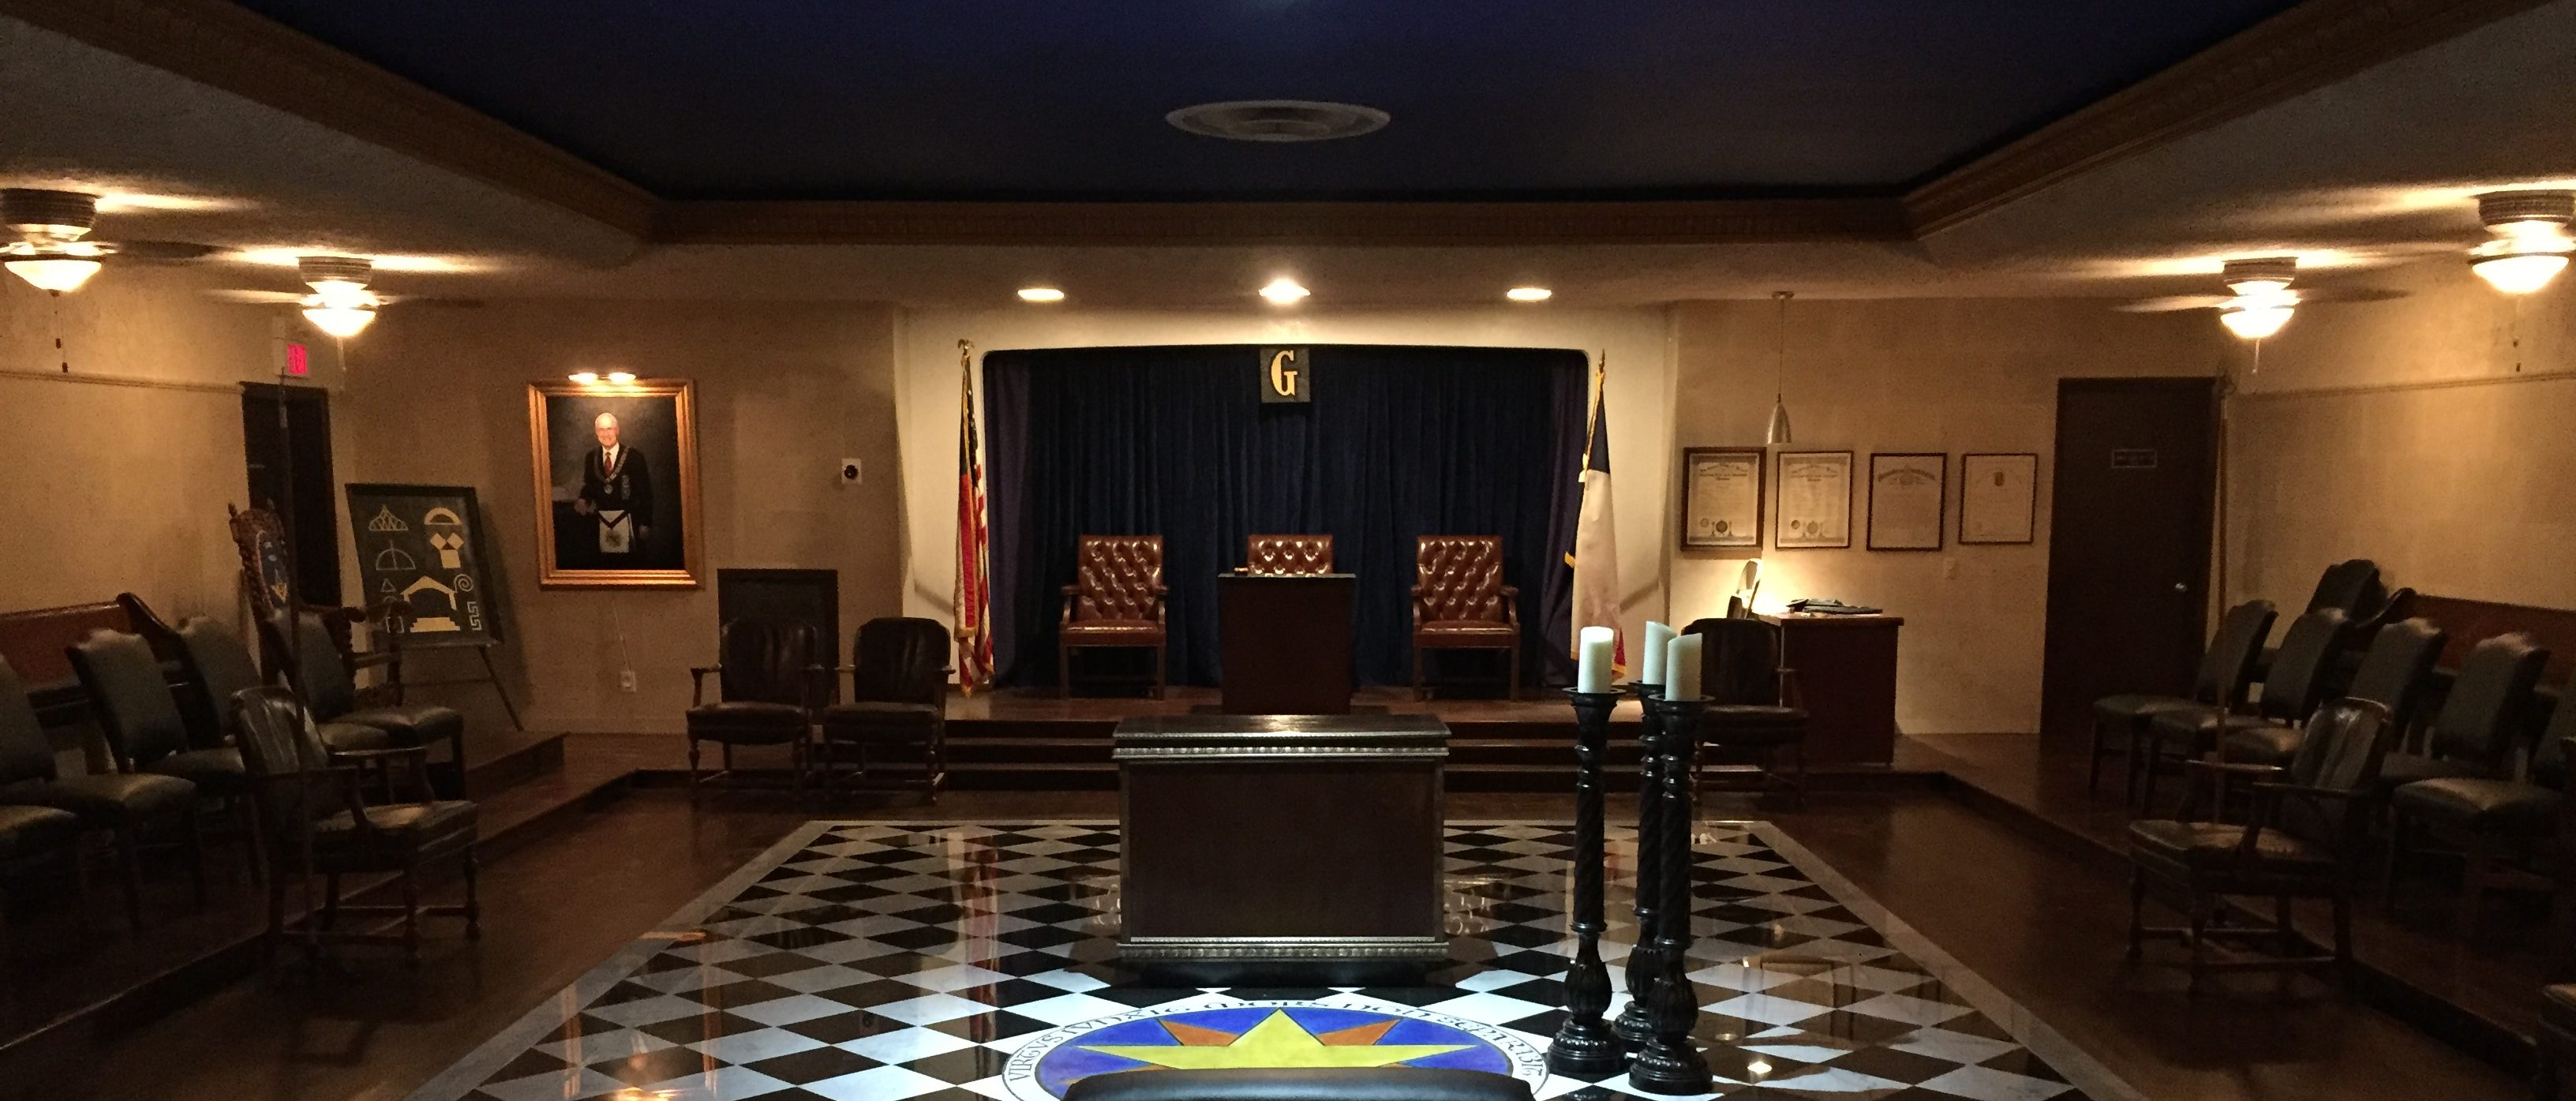 How To Become A Freemason | The Grand Lodge of Texas